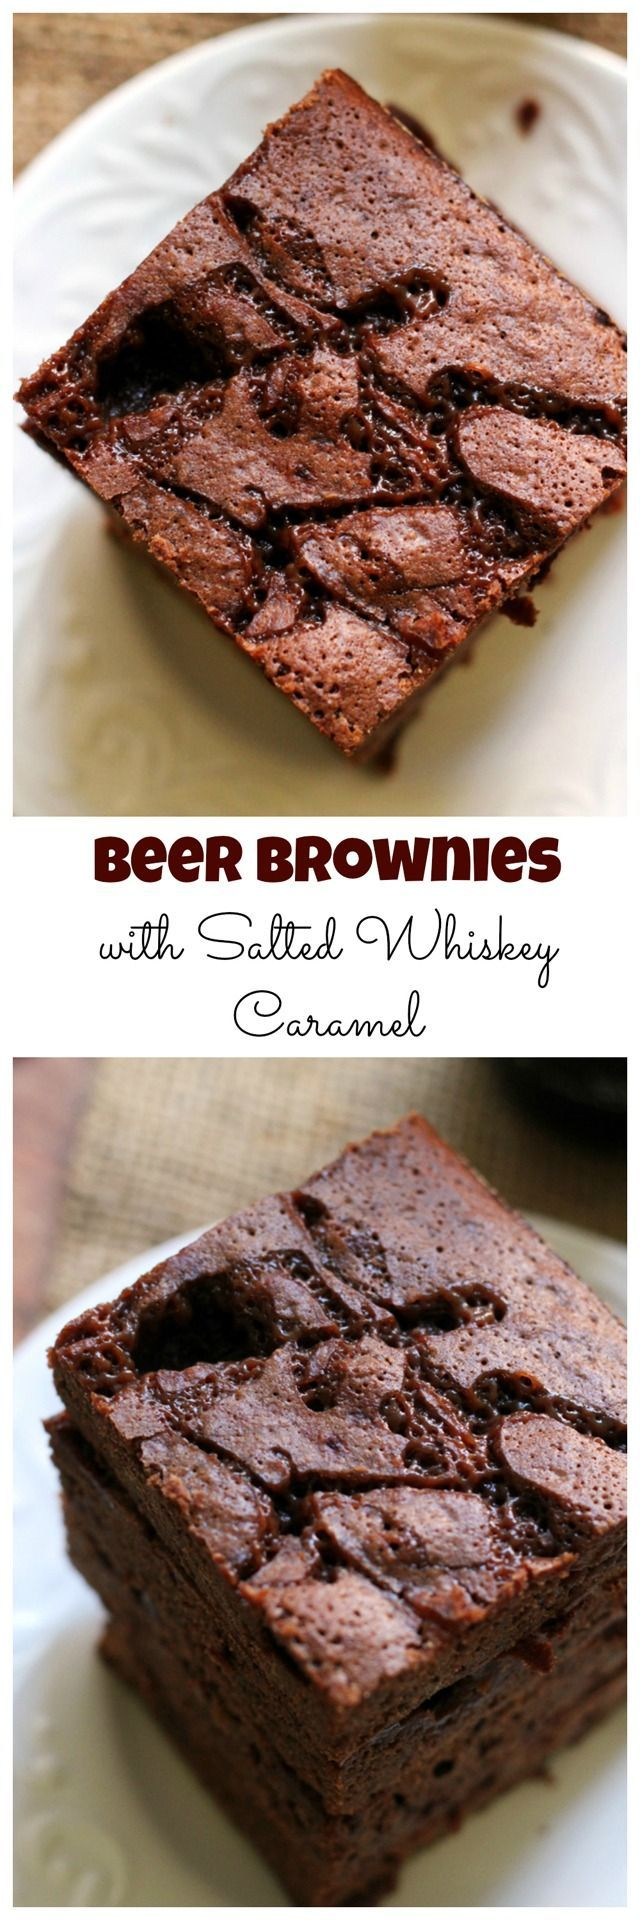 Why drink your alcohol when you can eat it? These beer brownies are rich and decadent, especially after being covered in a layer of salted whiskey caramel sauce.